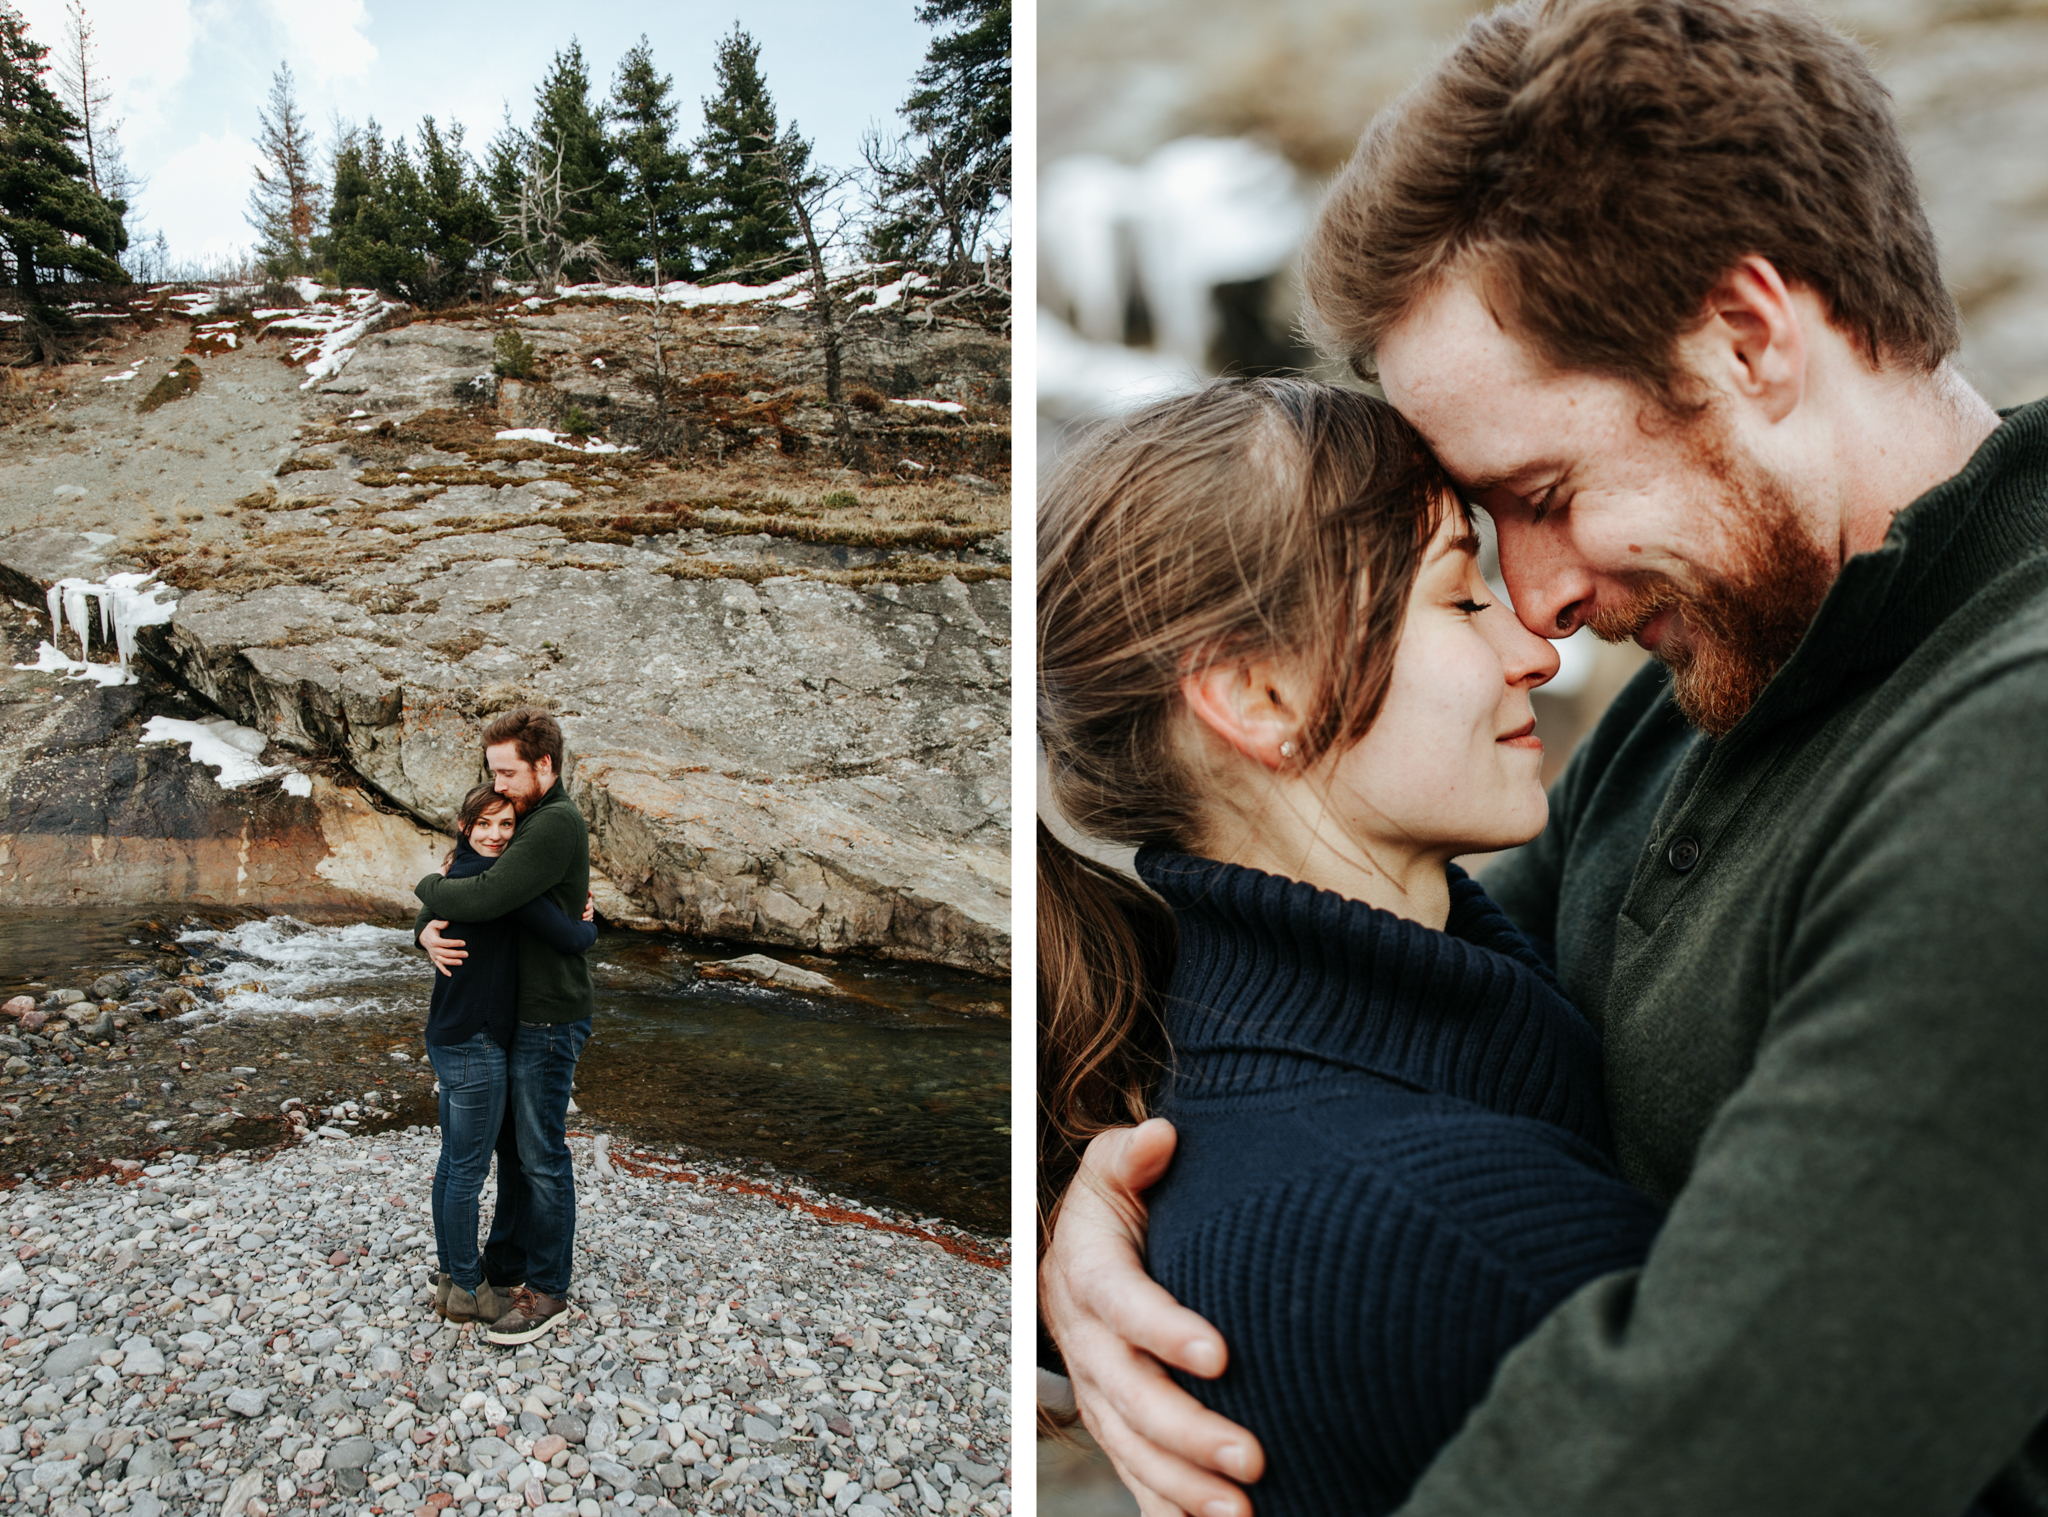 waterton-engagement-love-and-be-loved-photography-mountain-photographer-picture-image-photo-47-2.jpg